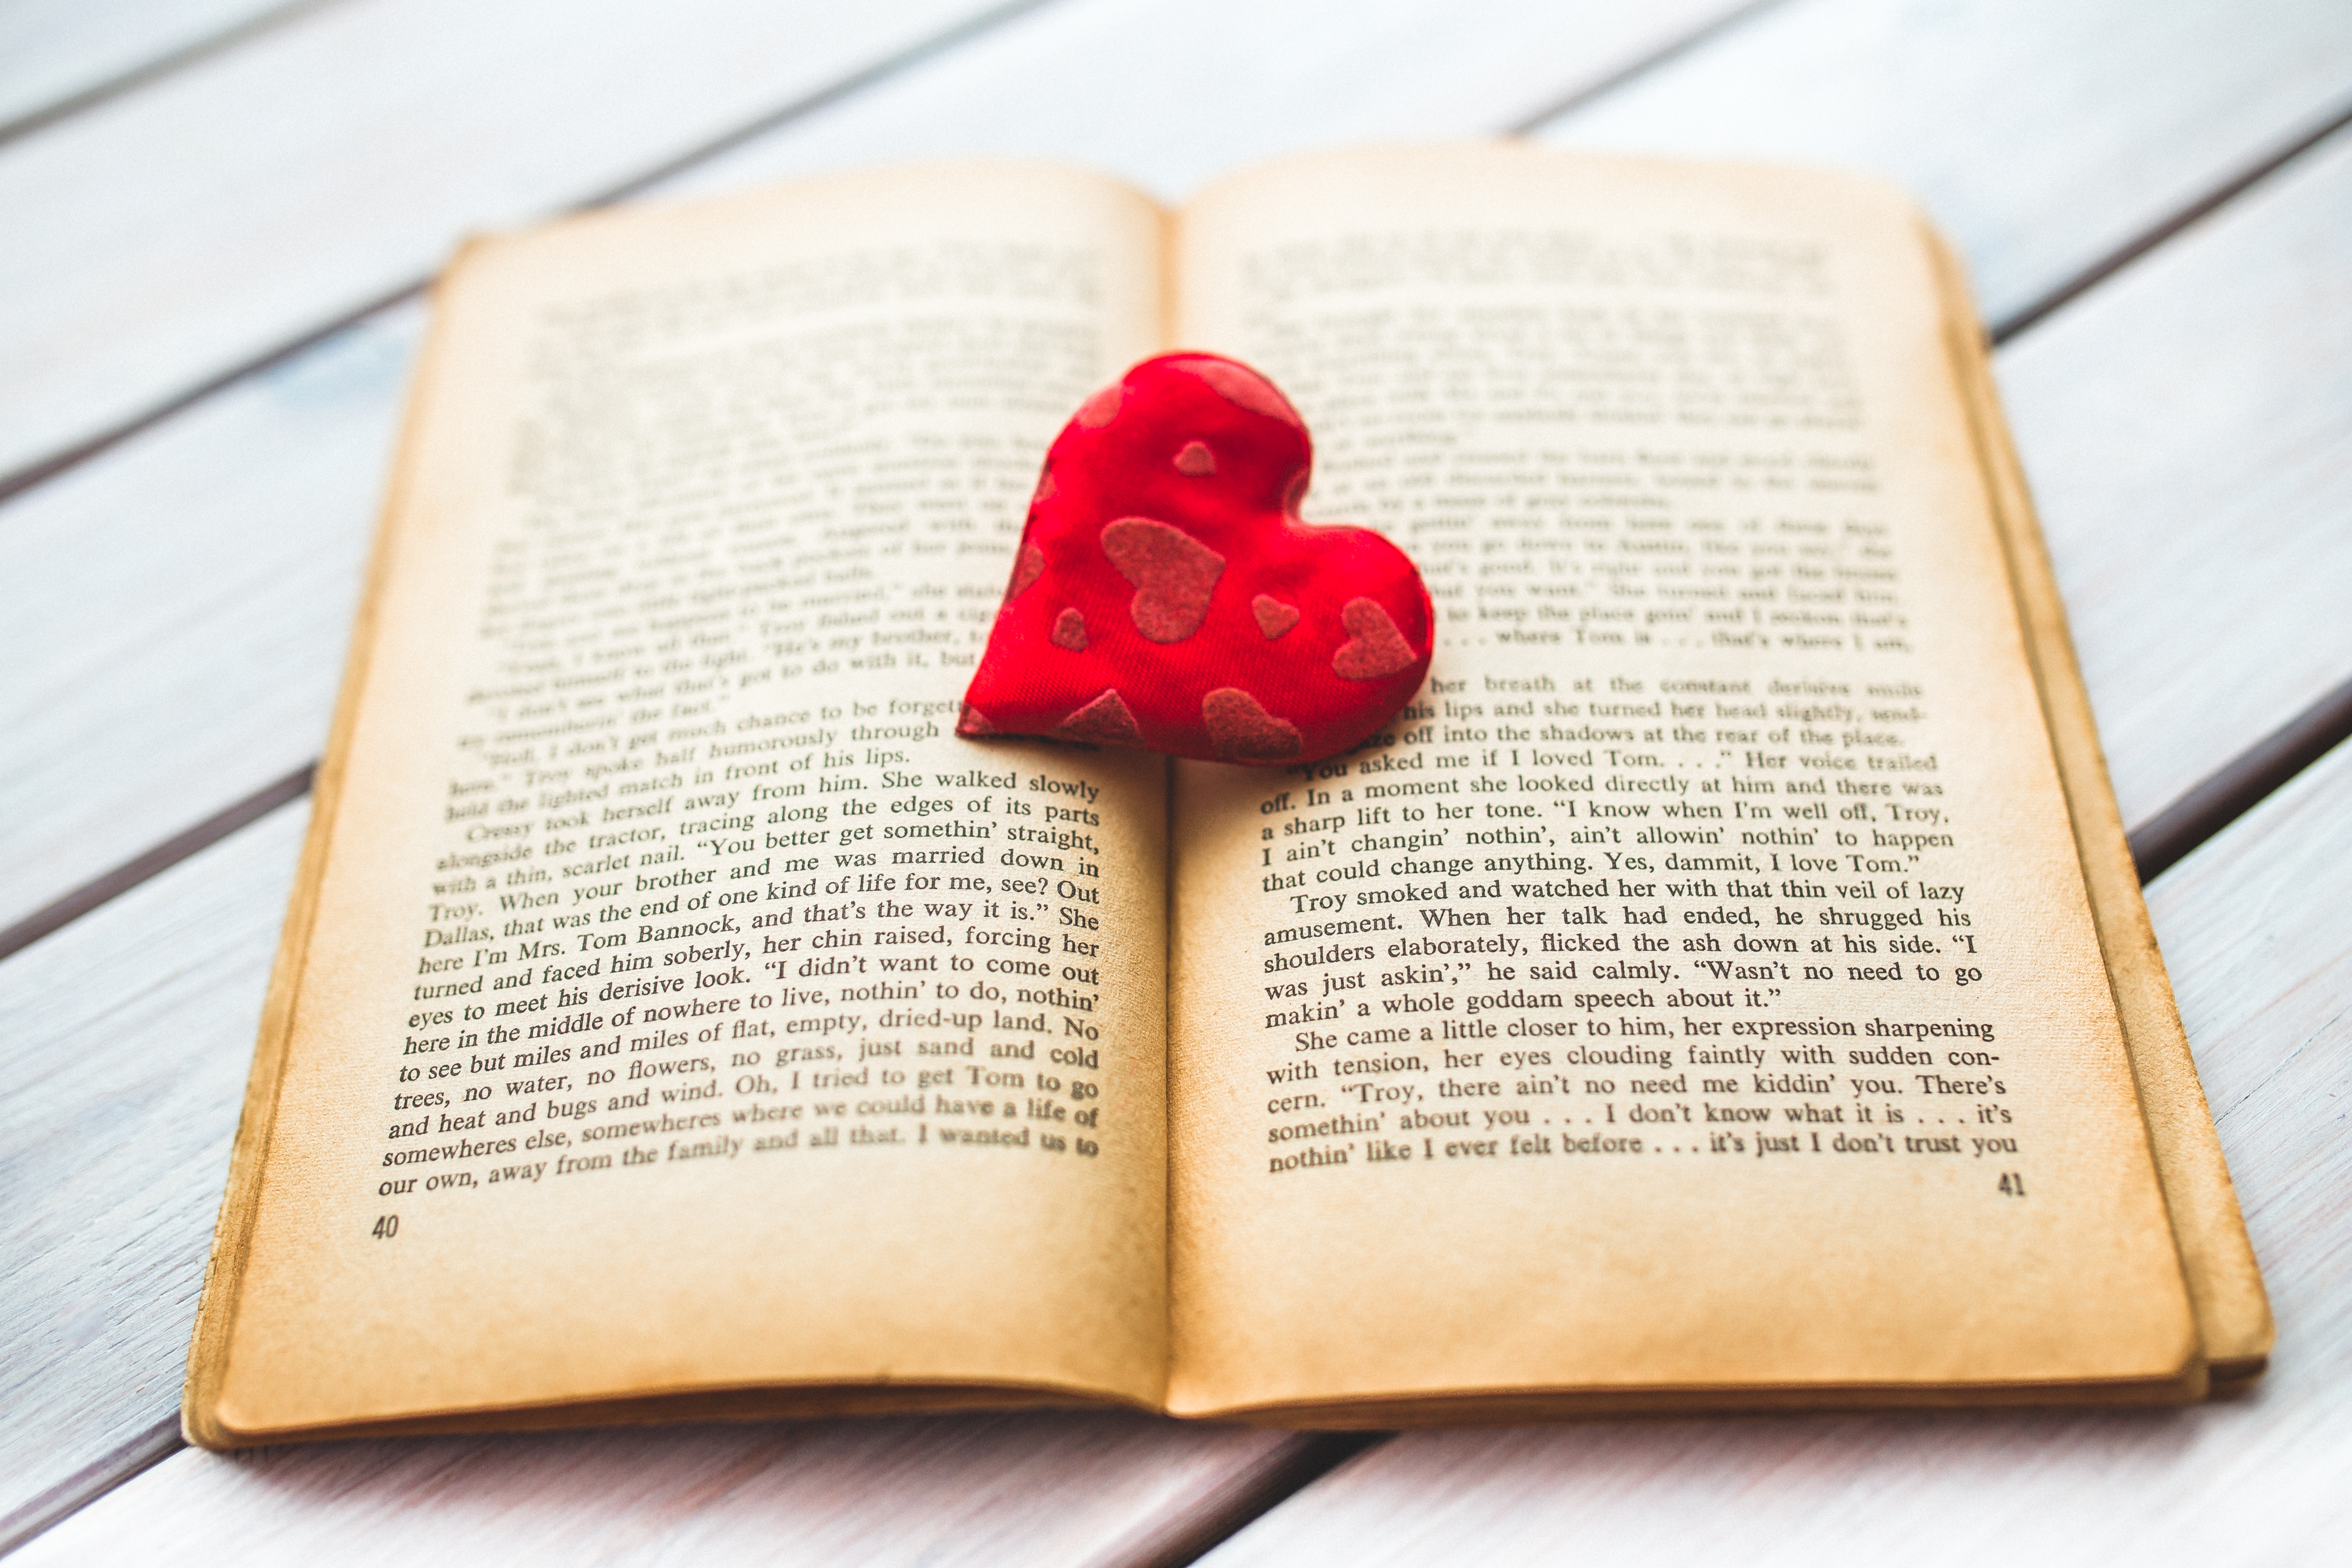 FreeUse - Red heart on a old opened book II high quality photo